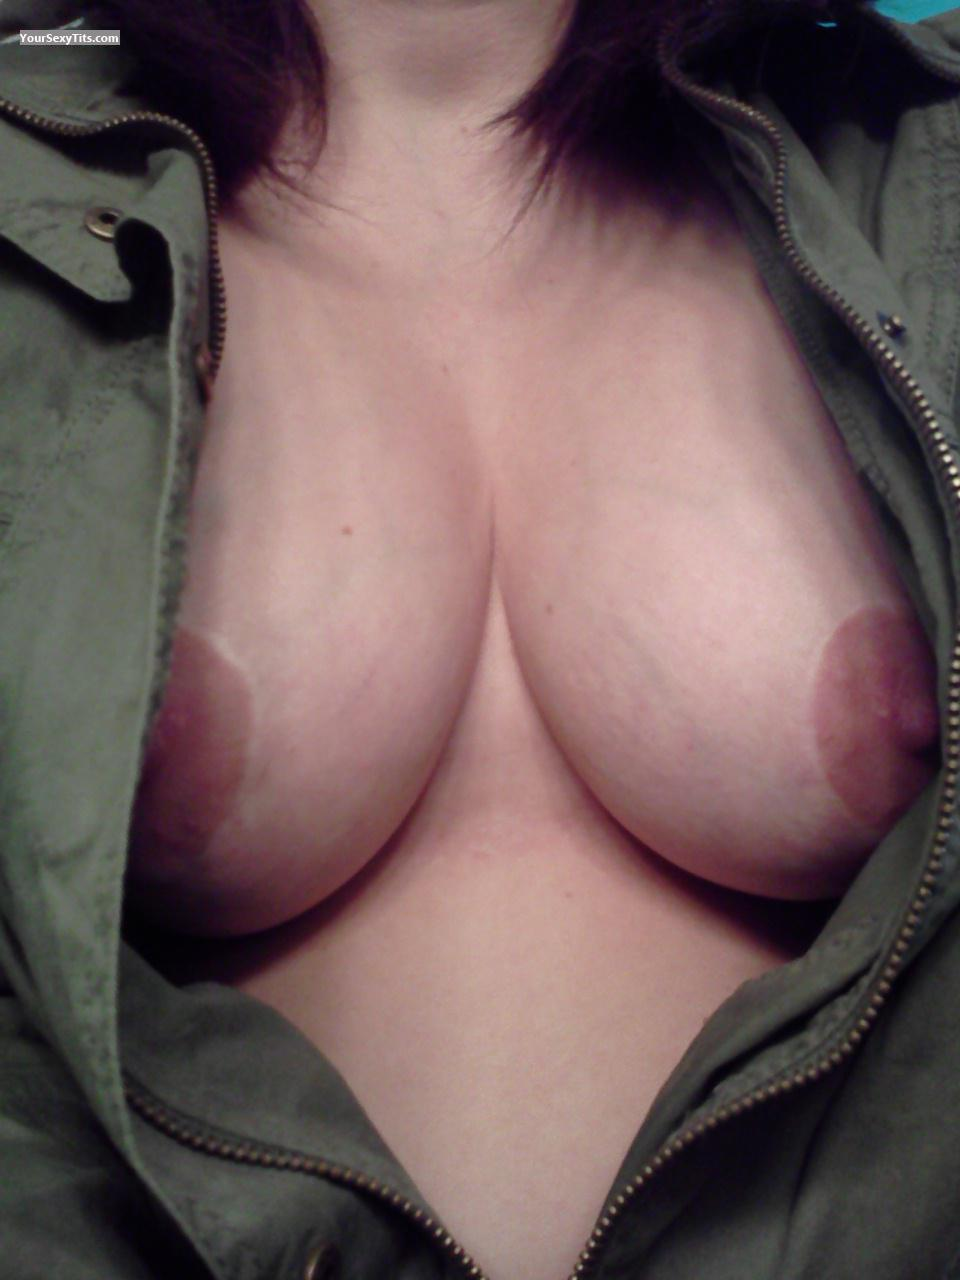 Tit Flash: Wife's Medium Tits (Selfie) - Amber from United States